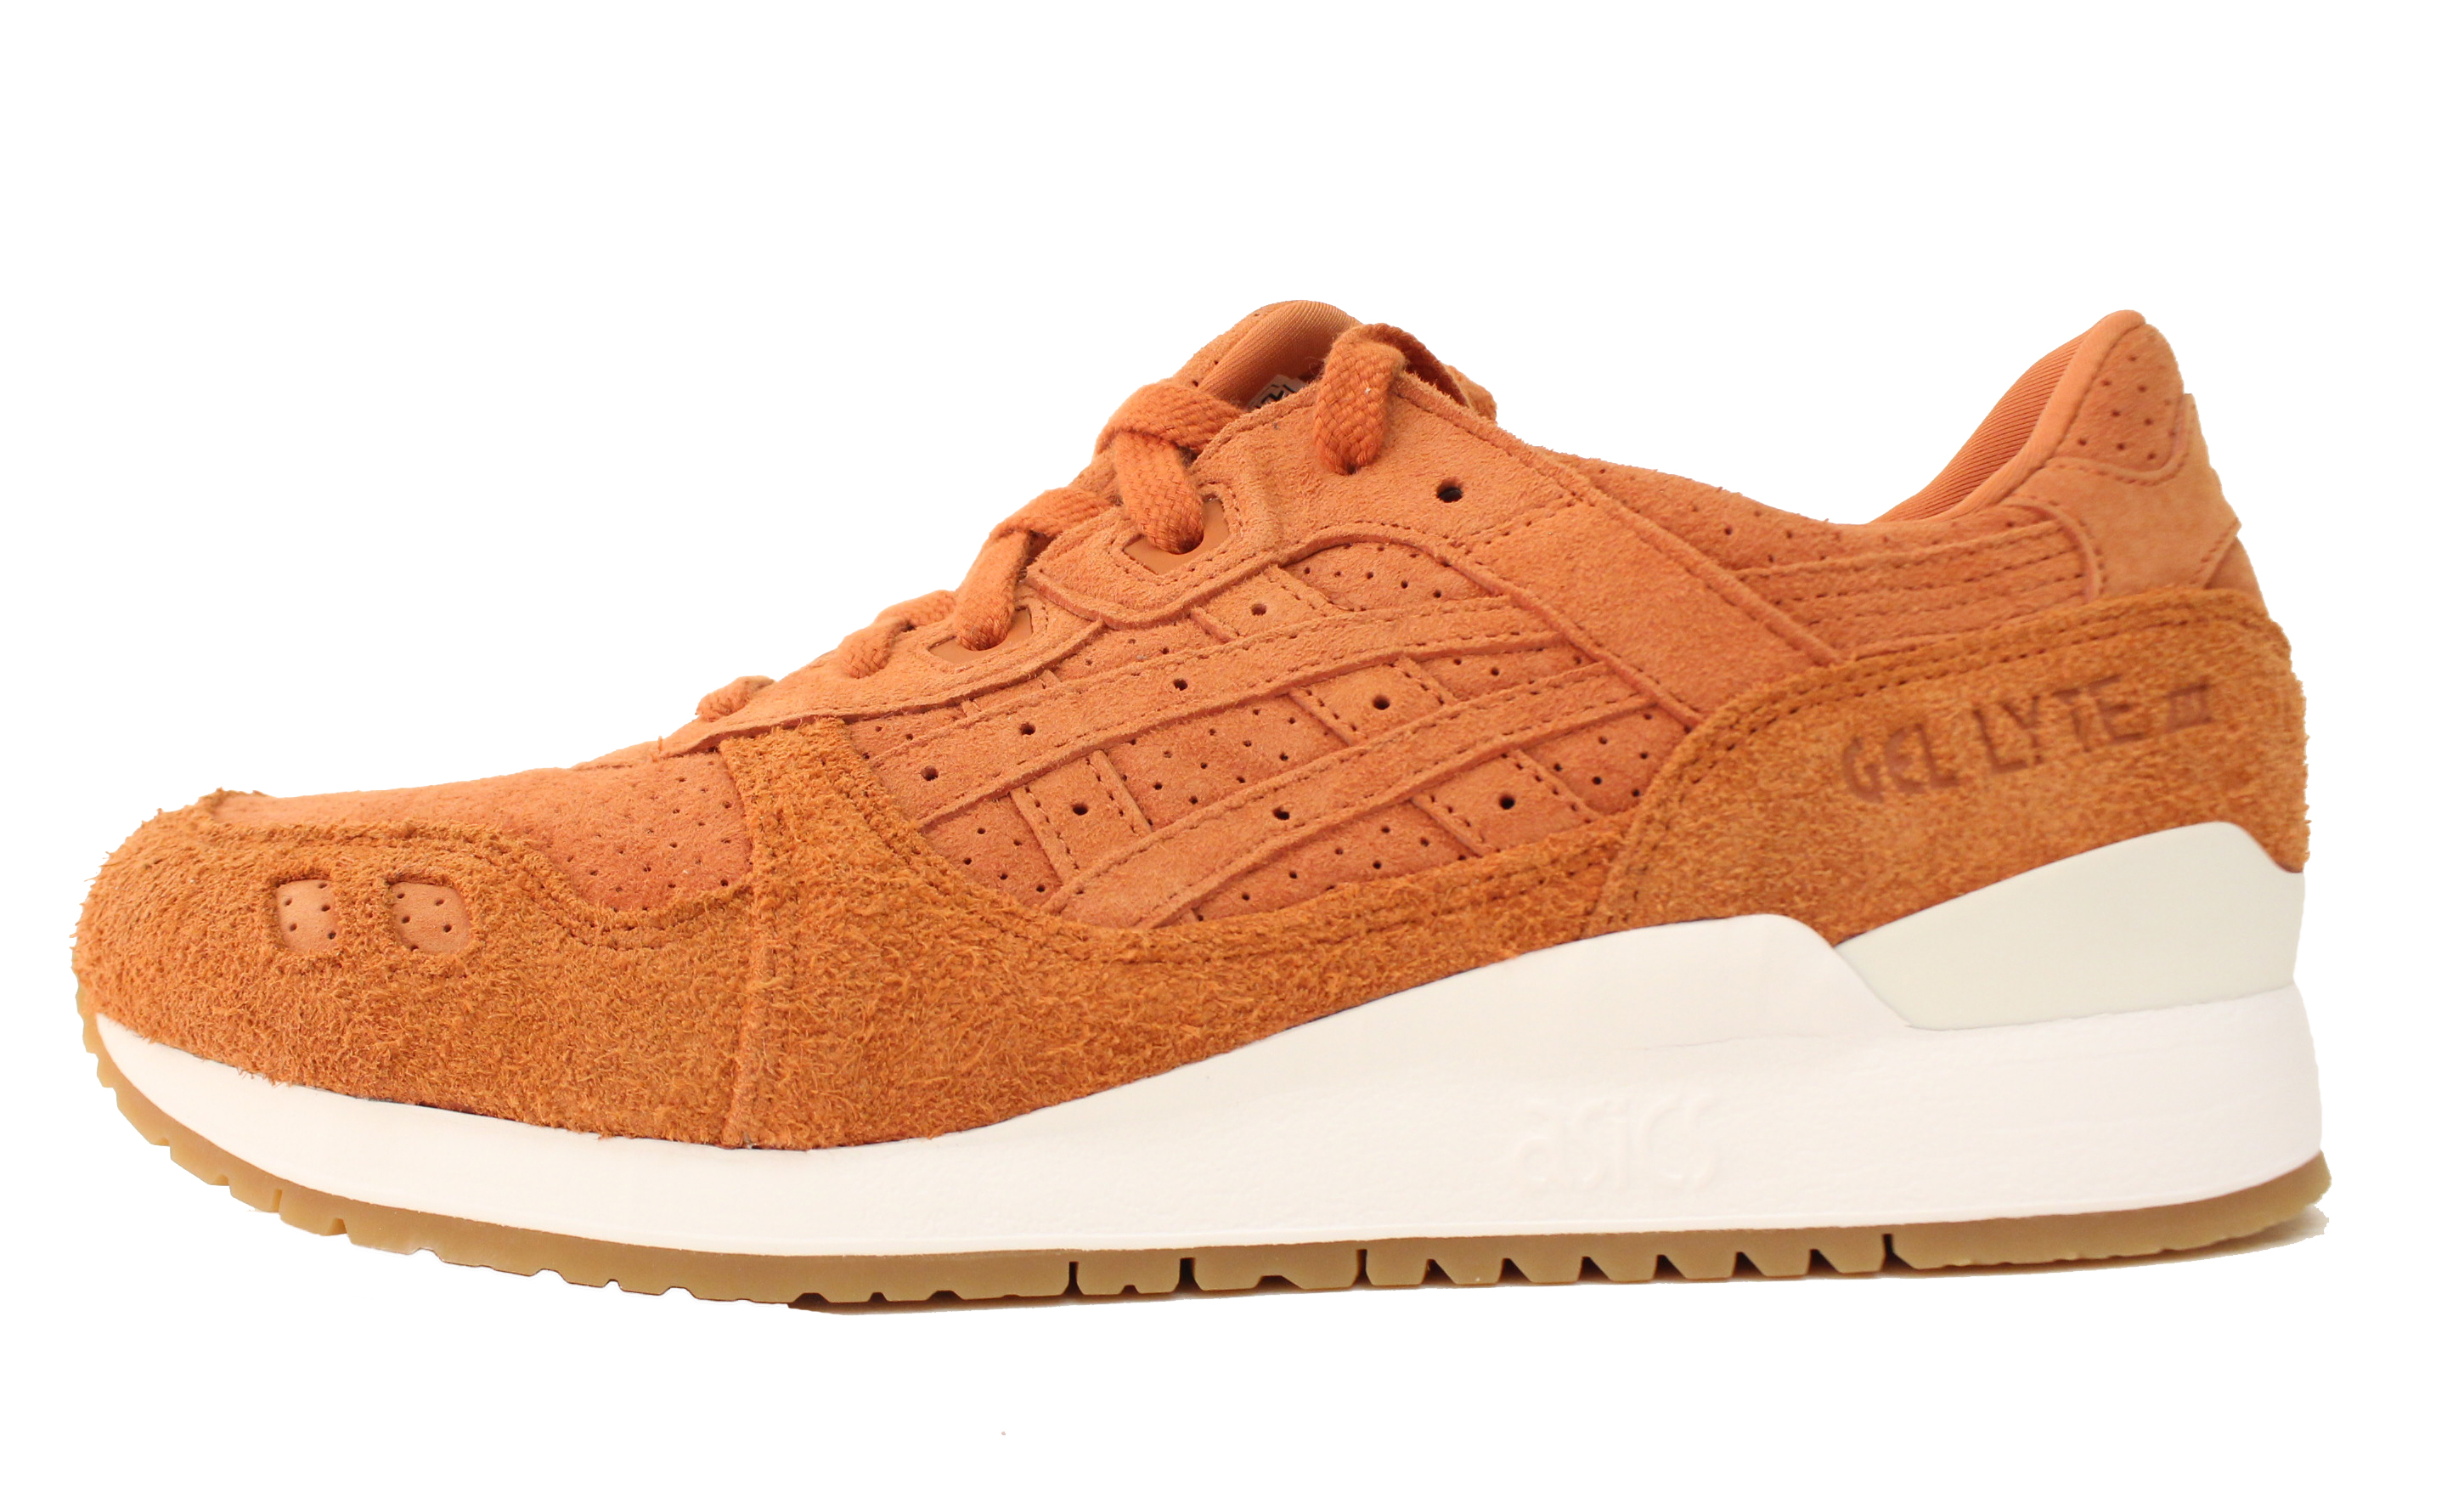 ASICS GEL LYTE III 3 SZ 9 SPICE ROUTE ORANGE WHITE GUM BROWN SUEDE HL7X3.3030